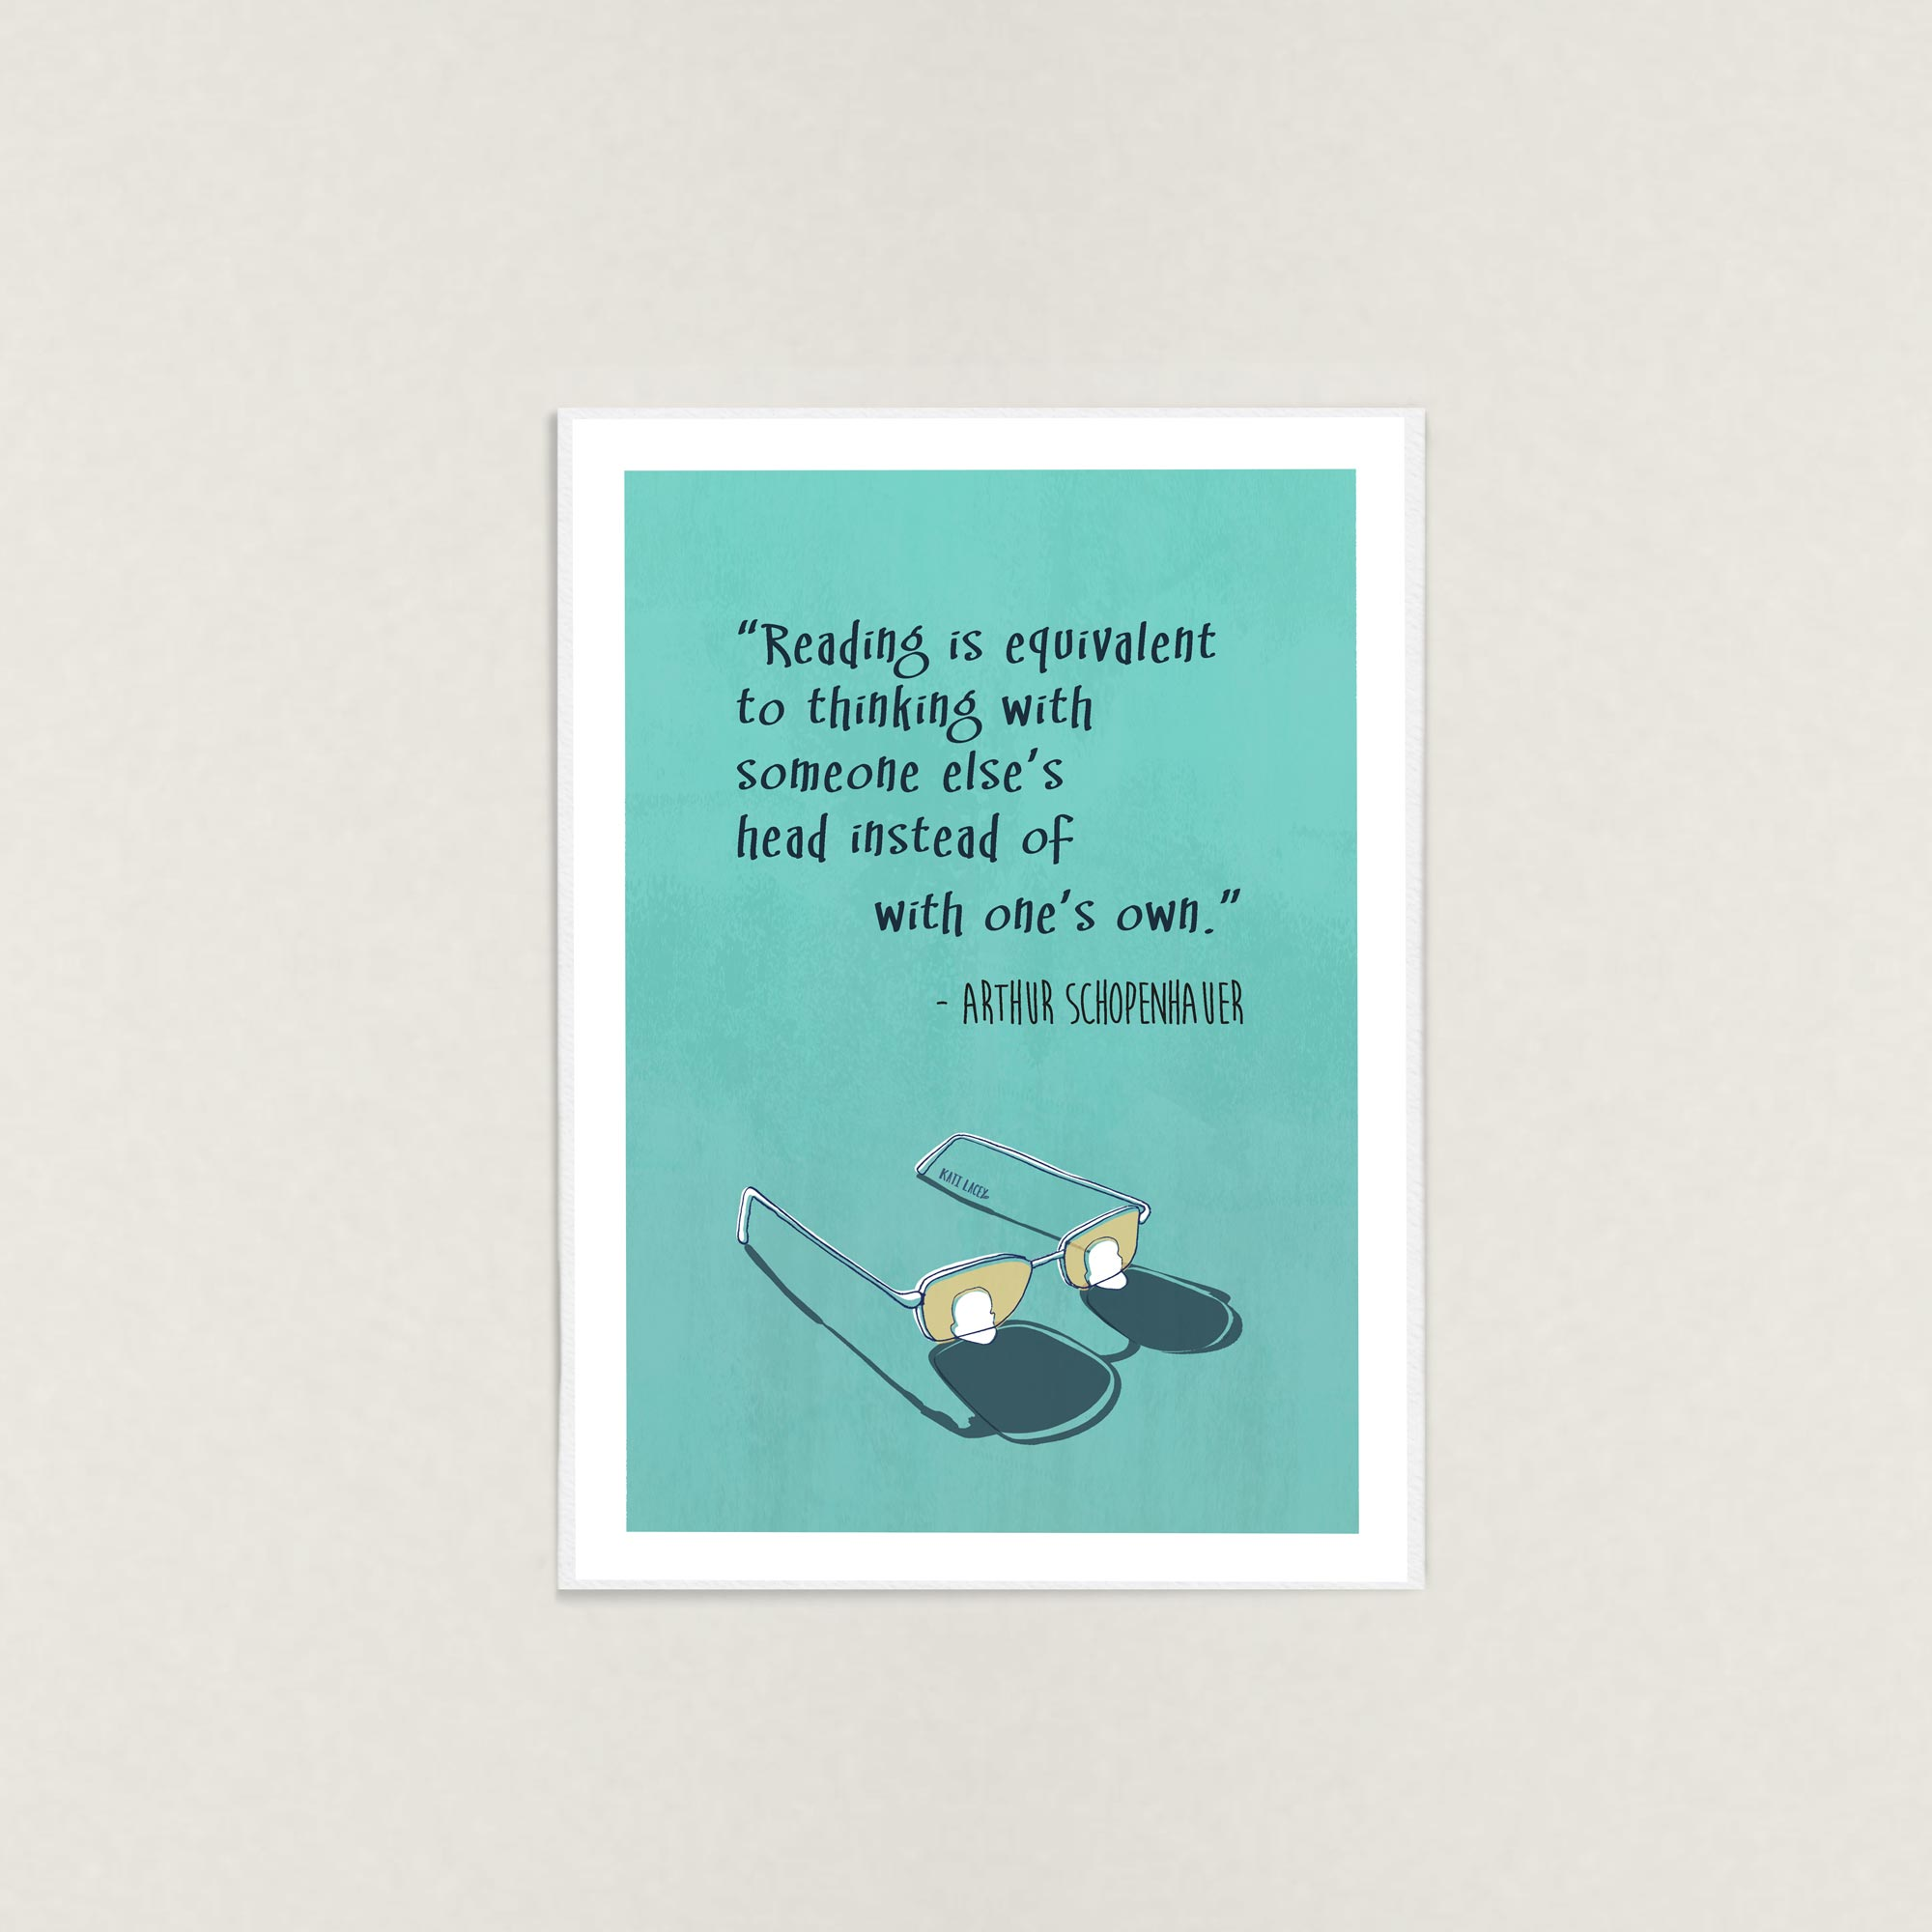 Schopenhauer-Quote-Illustration-Wall-Art-Print-by-Kati-Lacey Illustration-about-reading-and-thinking